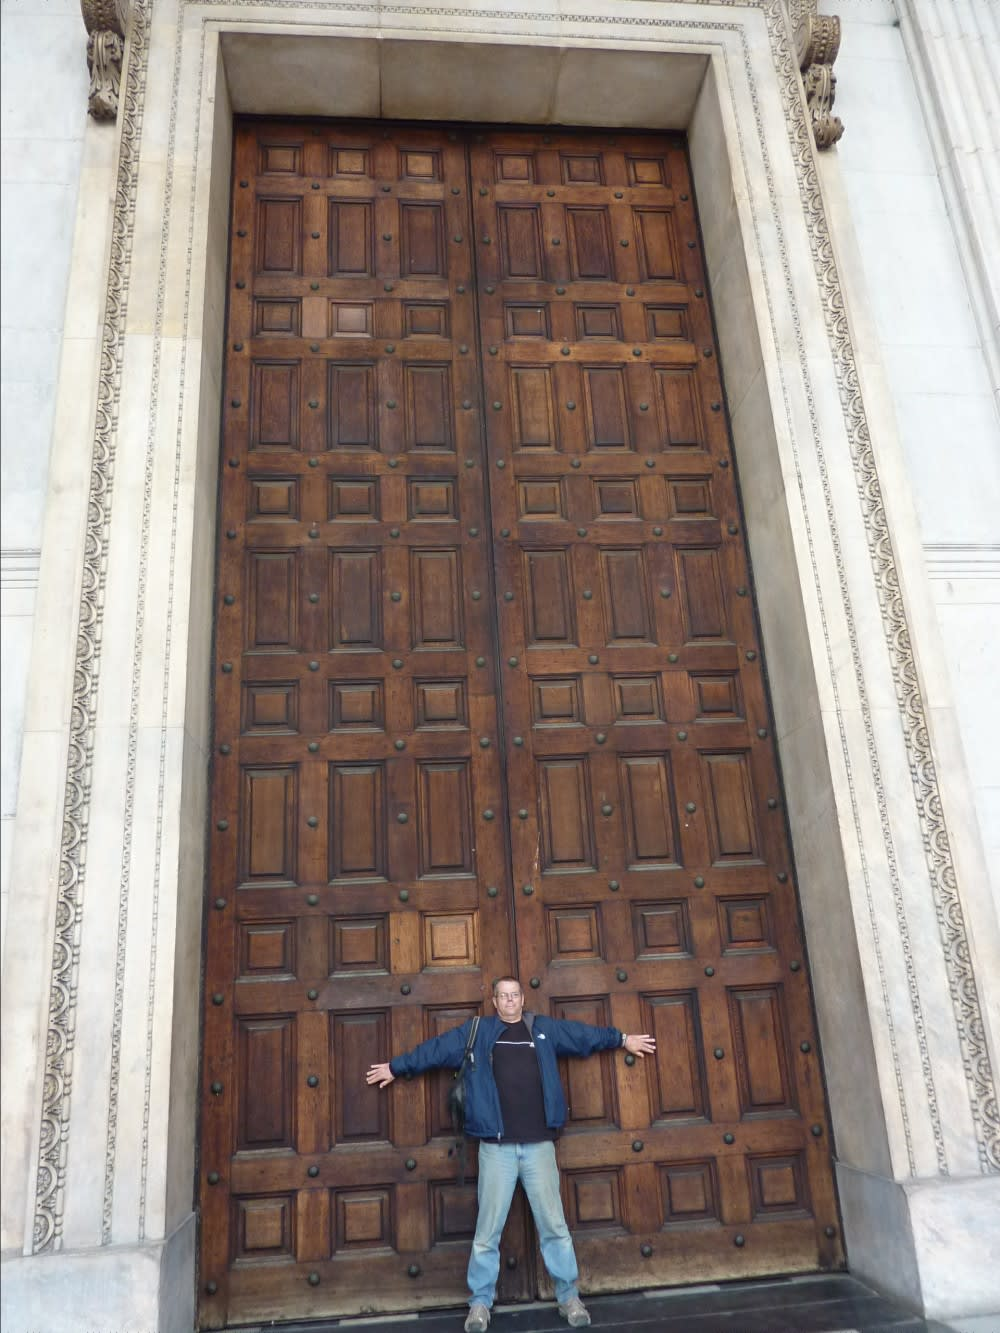 Why such big doors?? Richard stood showing the size of some doors at St Pauls Cathedral